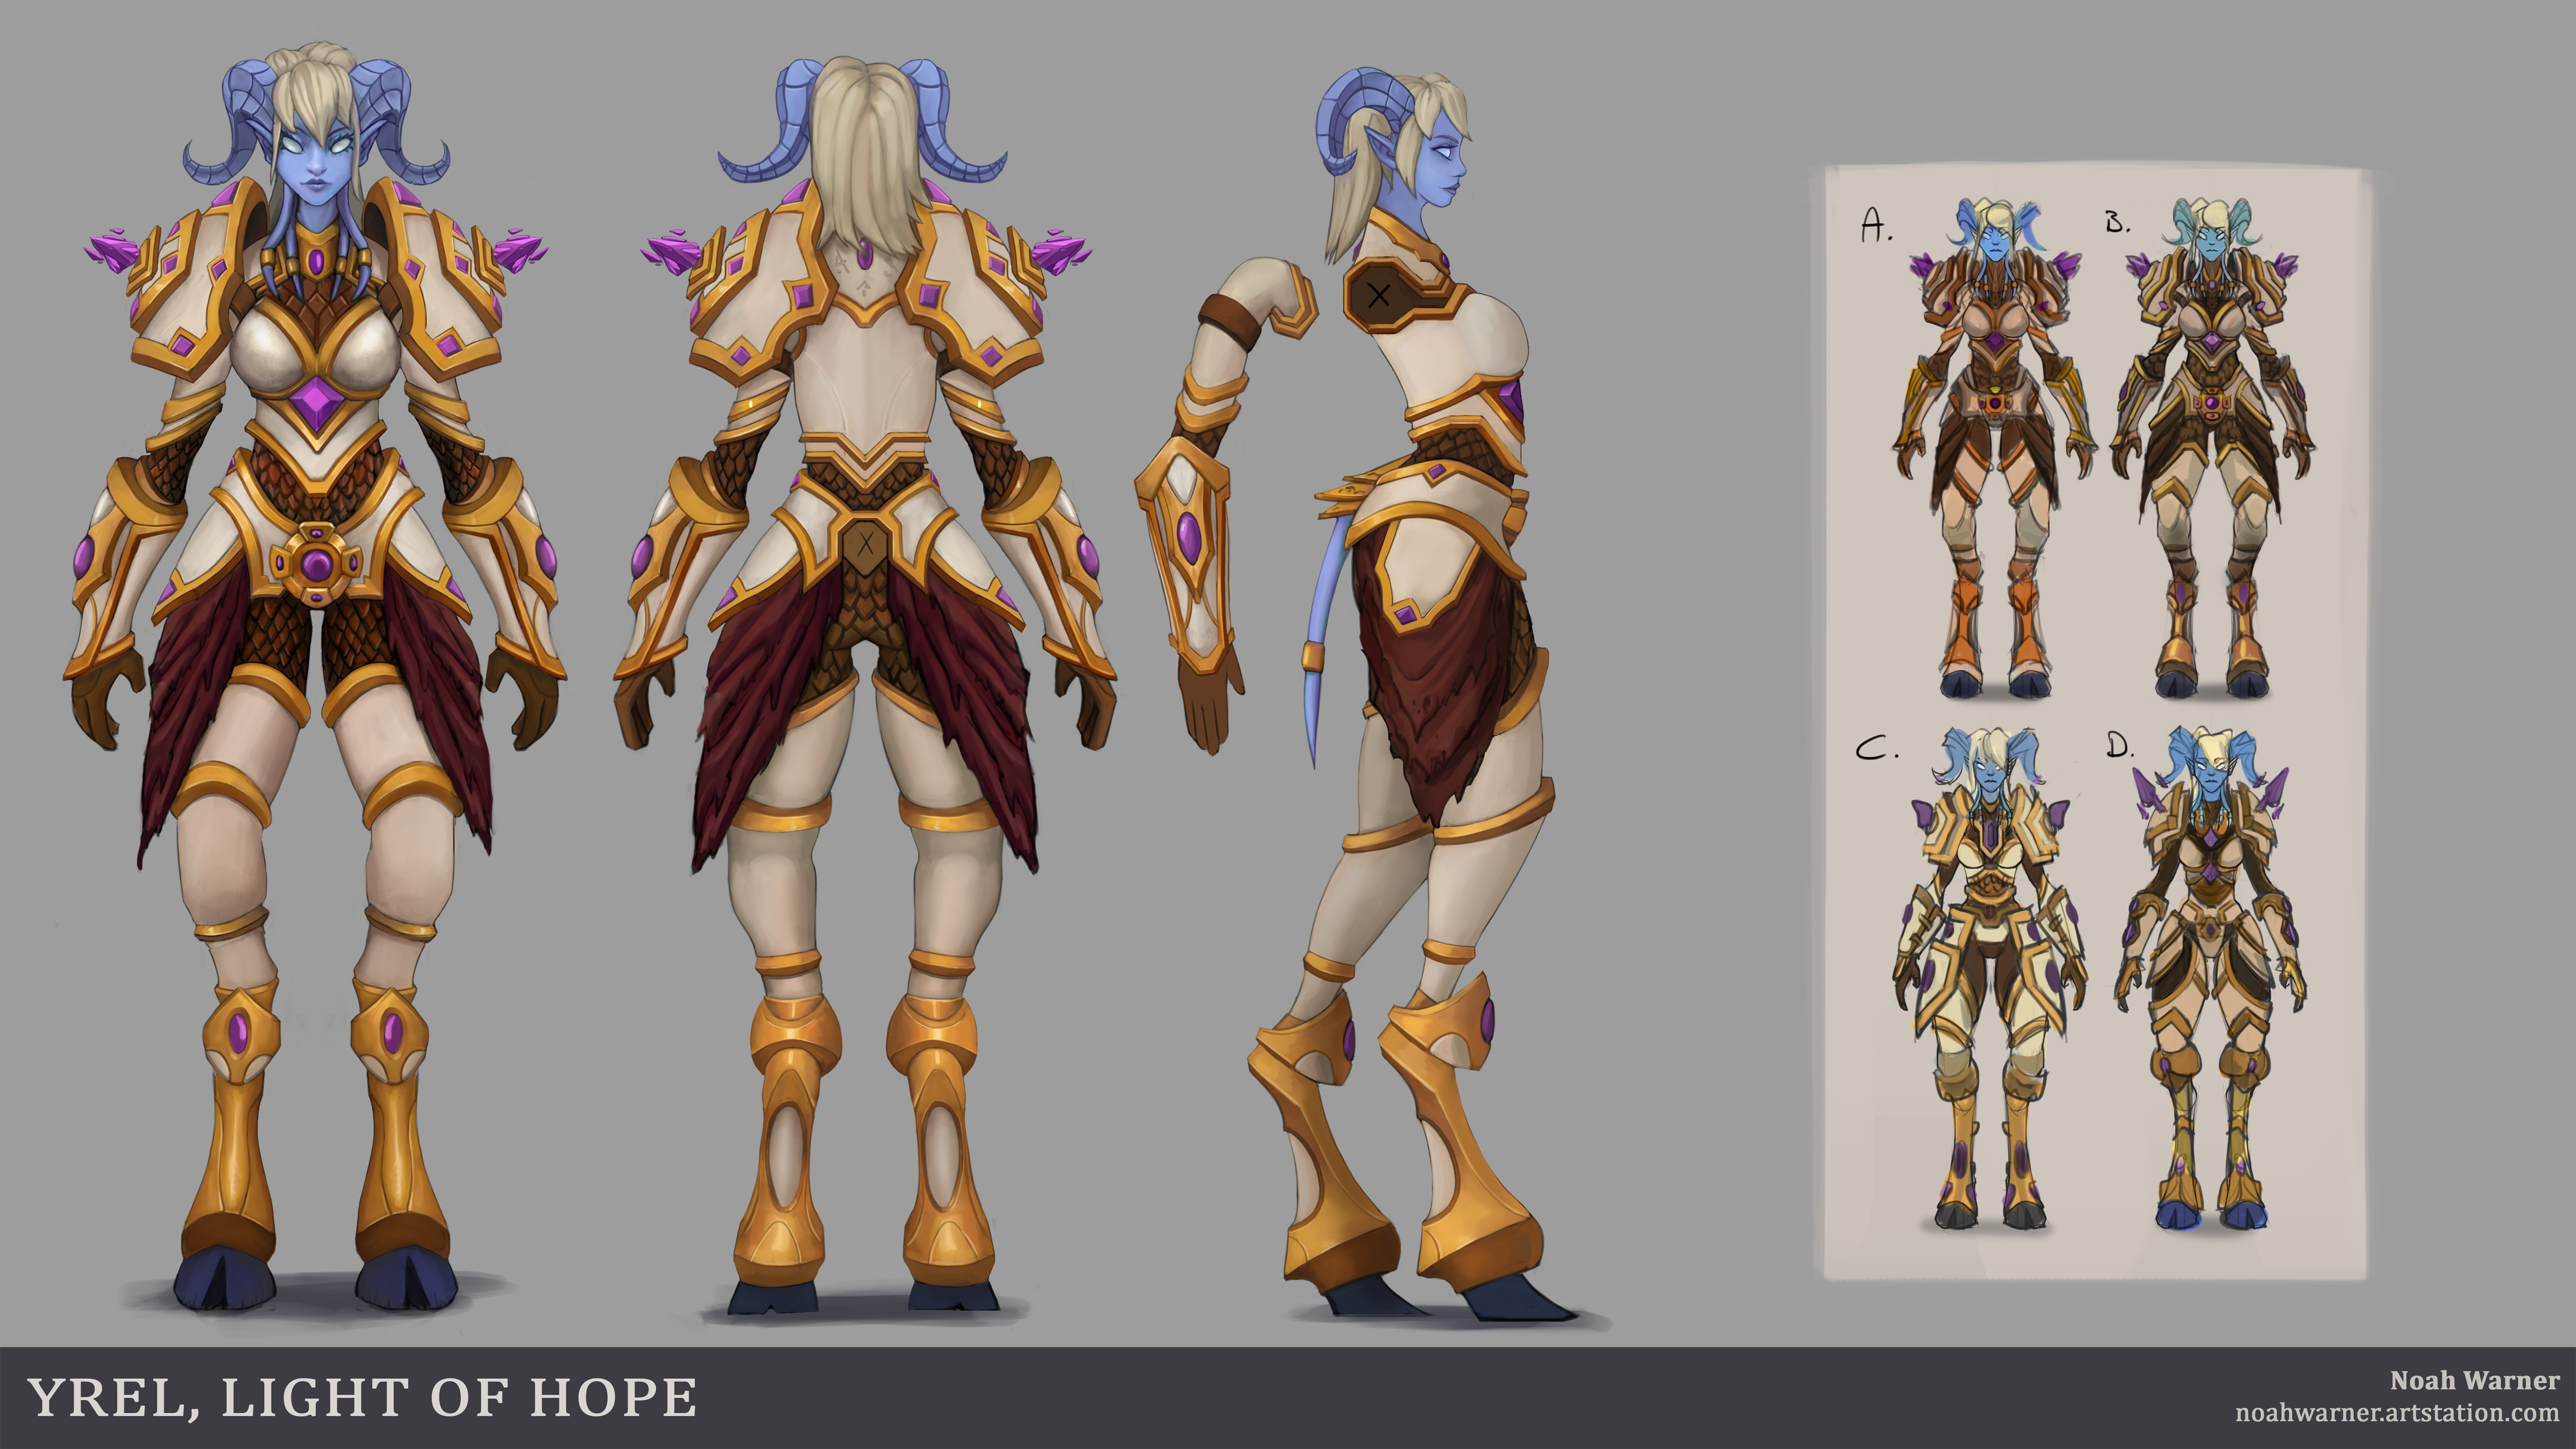 Yrel The Light Of Hope By Tehsasquatch On Deviantart New additions include the warcraft hero yrel. yrel the light of hope by tehsasquatch